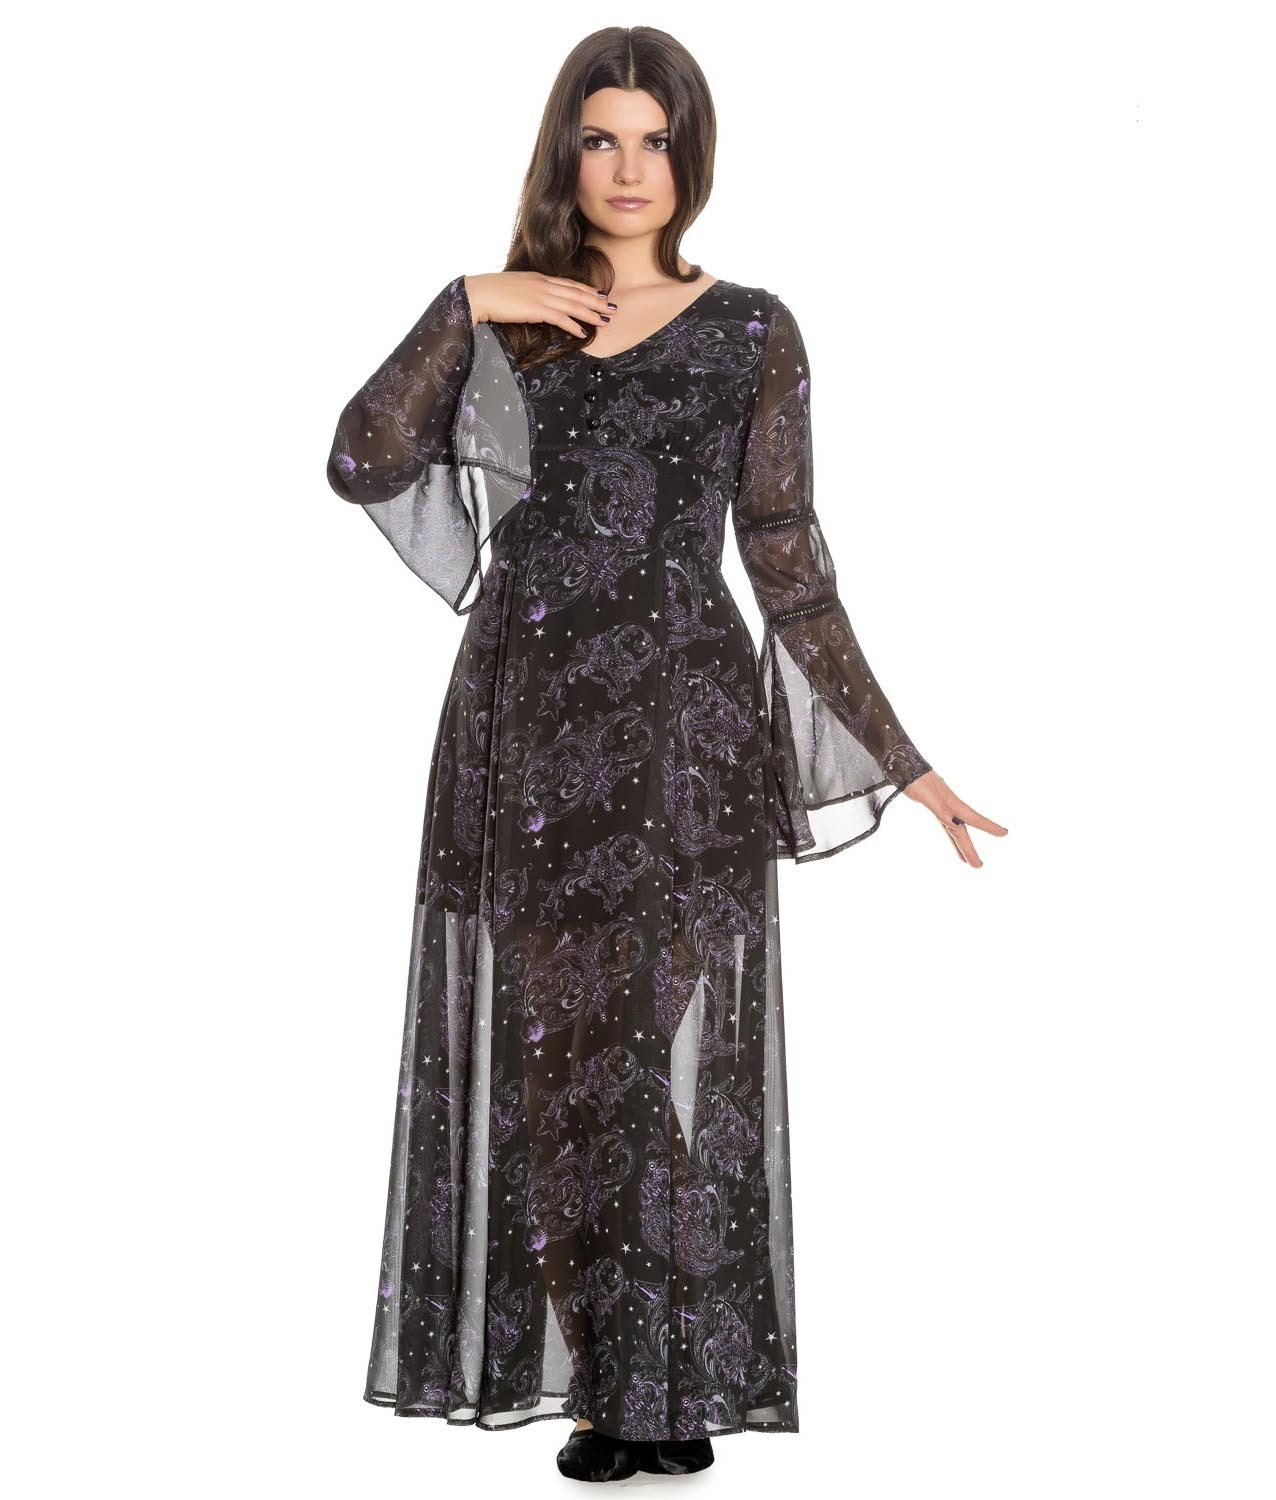 Hell-Bunny-Spin-Doctor-Goth-Maxi-Dress-DARK-SEA-Mermaid-Skeletons-All-Sizes thumbnail 19